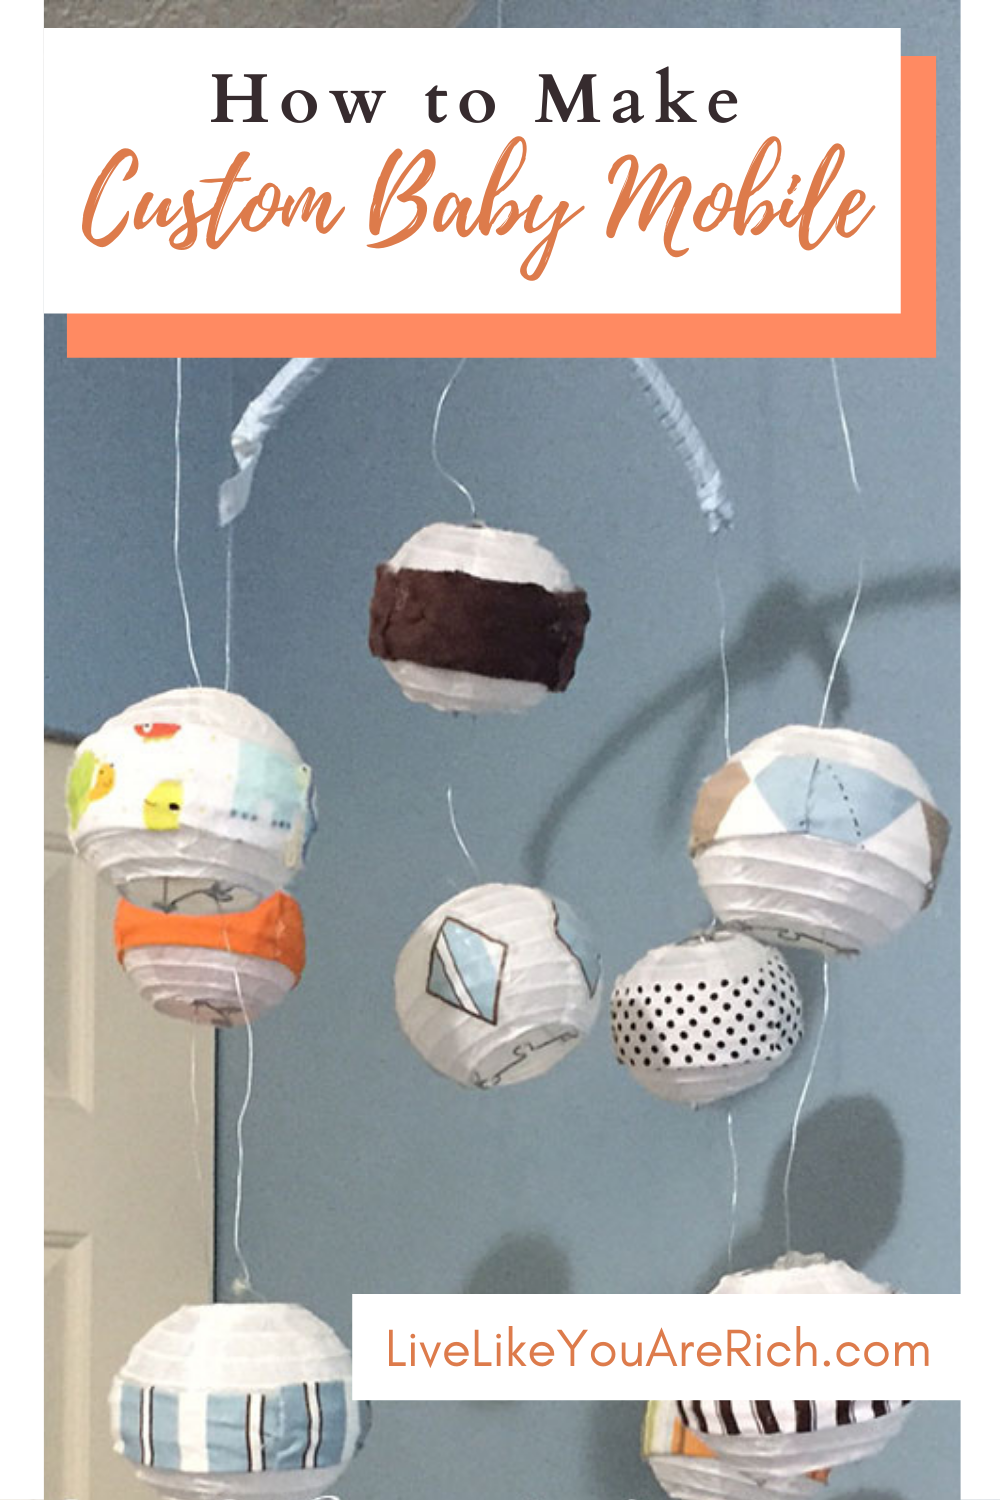 This Custom Baby Mobile is a great idea for decorating a nursery. They are often less expensive, match the decor better, and are fun to customize. I made this baby mobile for my son's changing table a few years ago. This would be a great gift for a baby shower as well! #babymobile #nurseryroom #nurserydecor